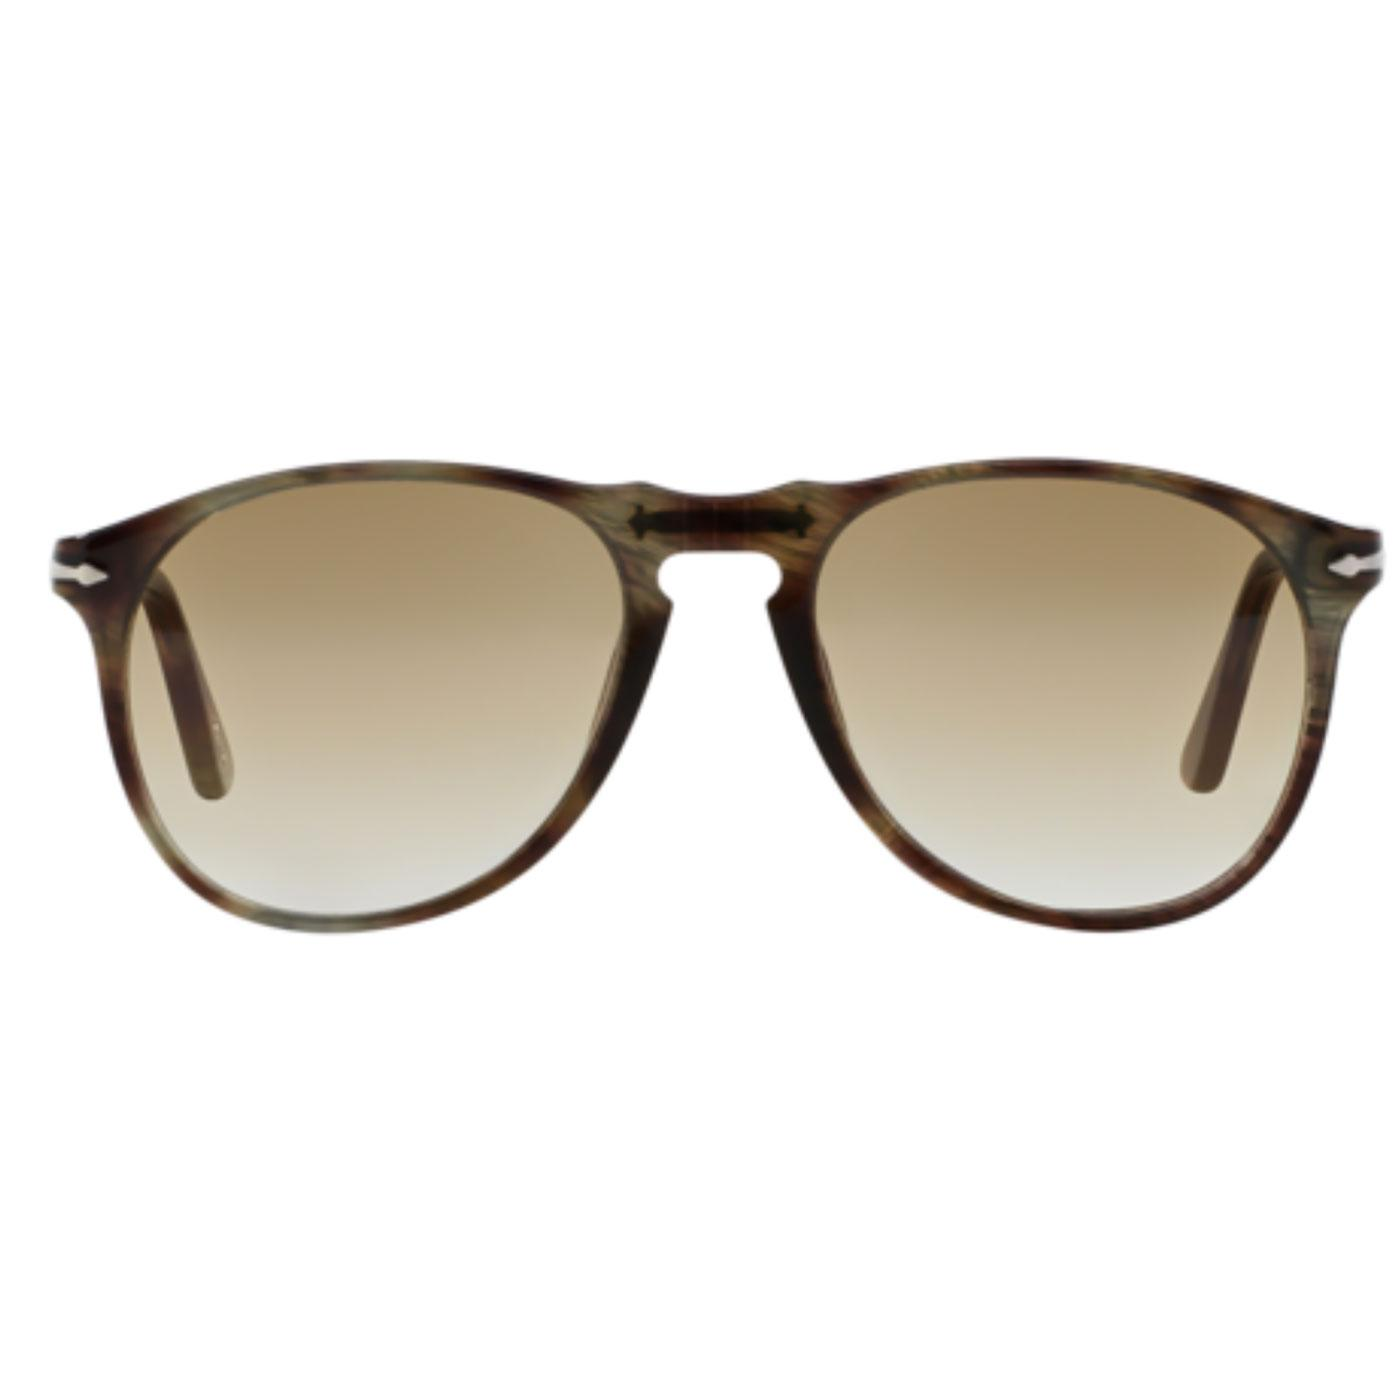 649 Series PERSOL Sunglasses (Havana Brown Smoke)